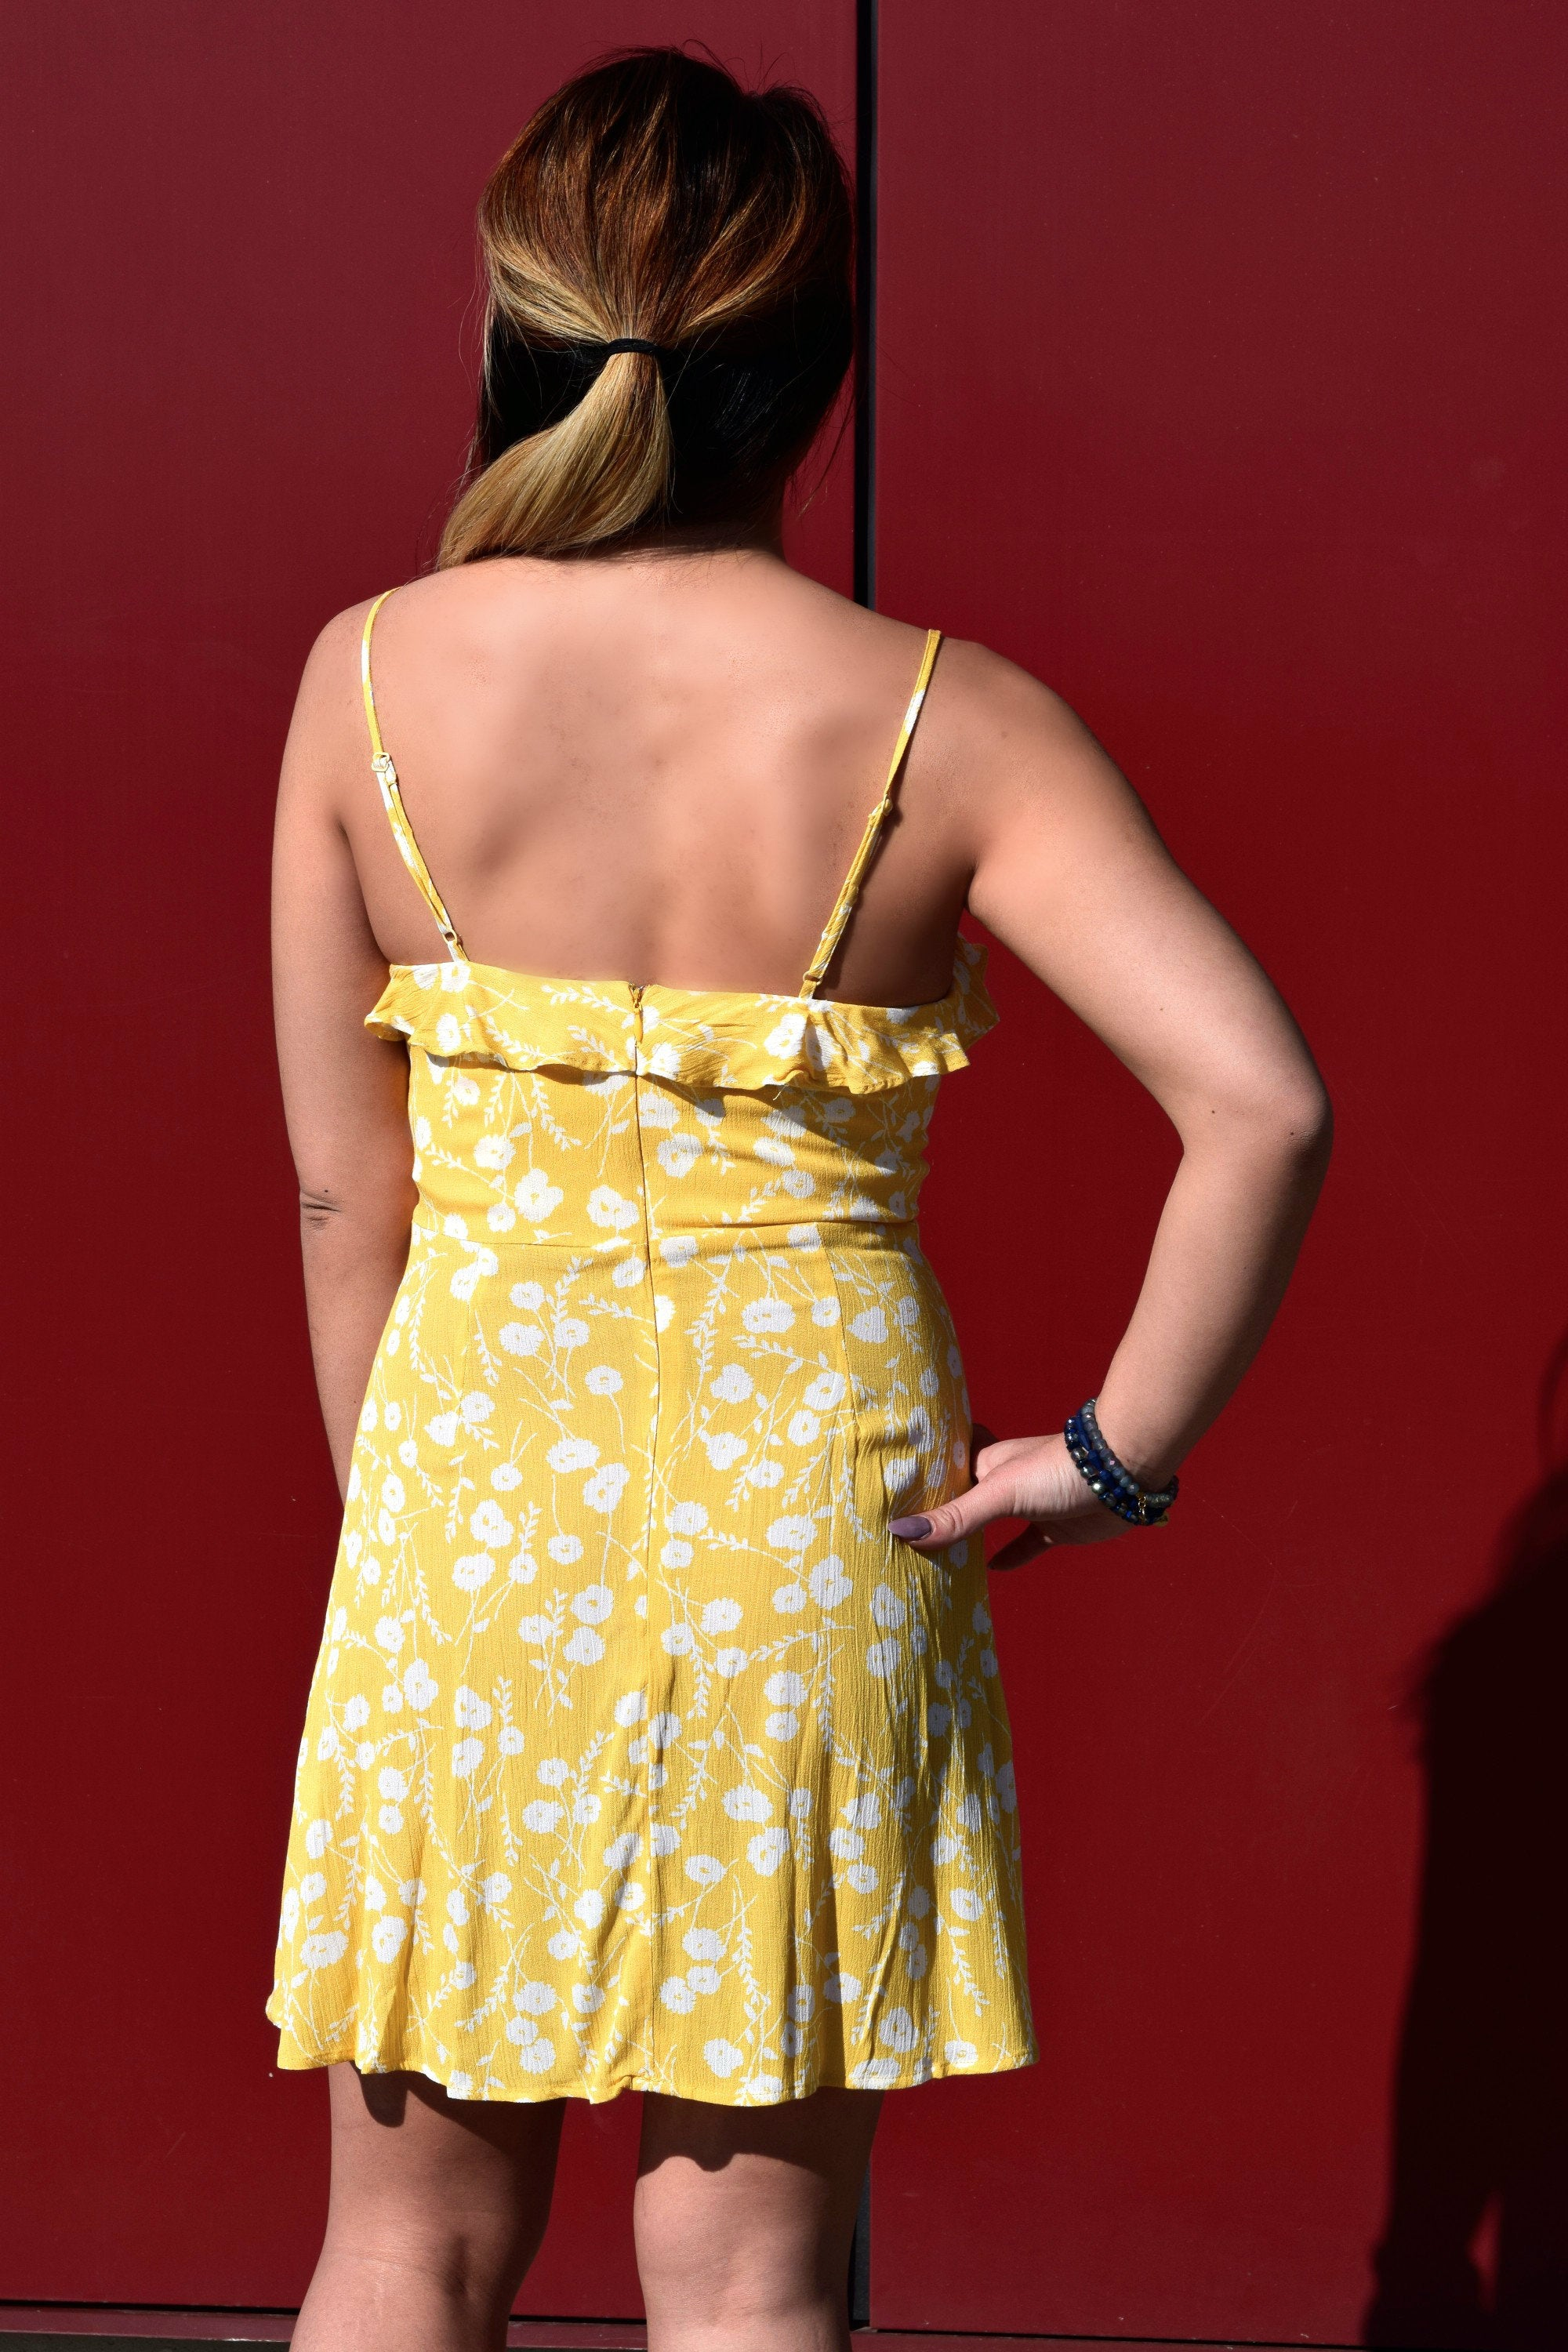 SUNSHINEY DAY YELLOW DRESS